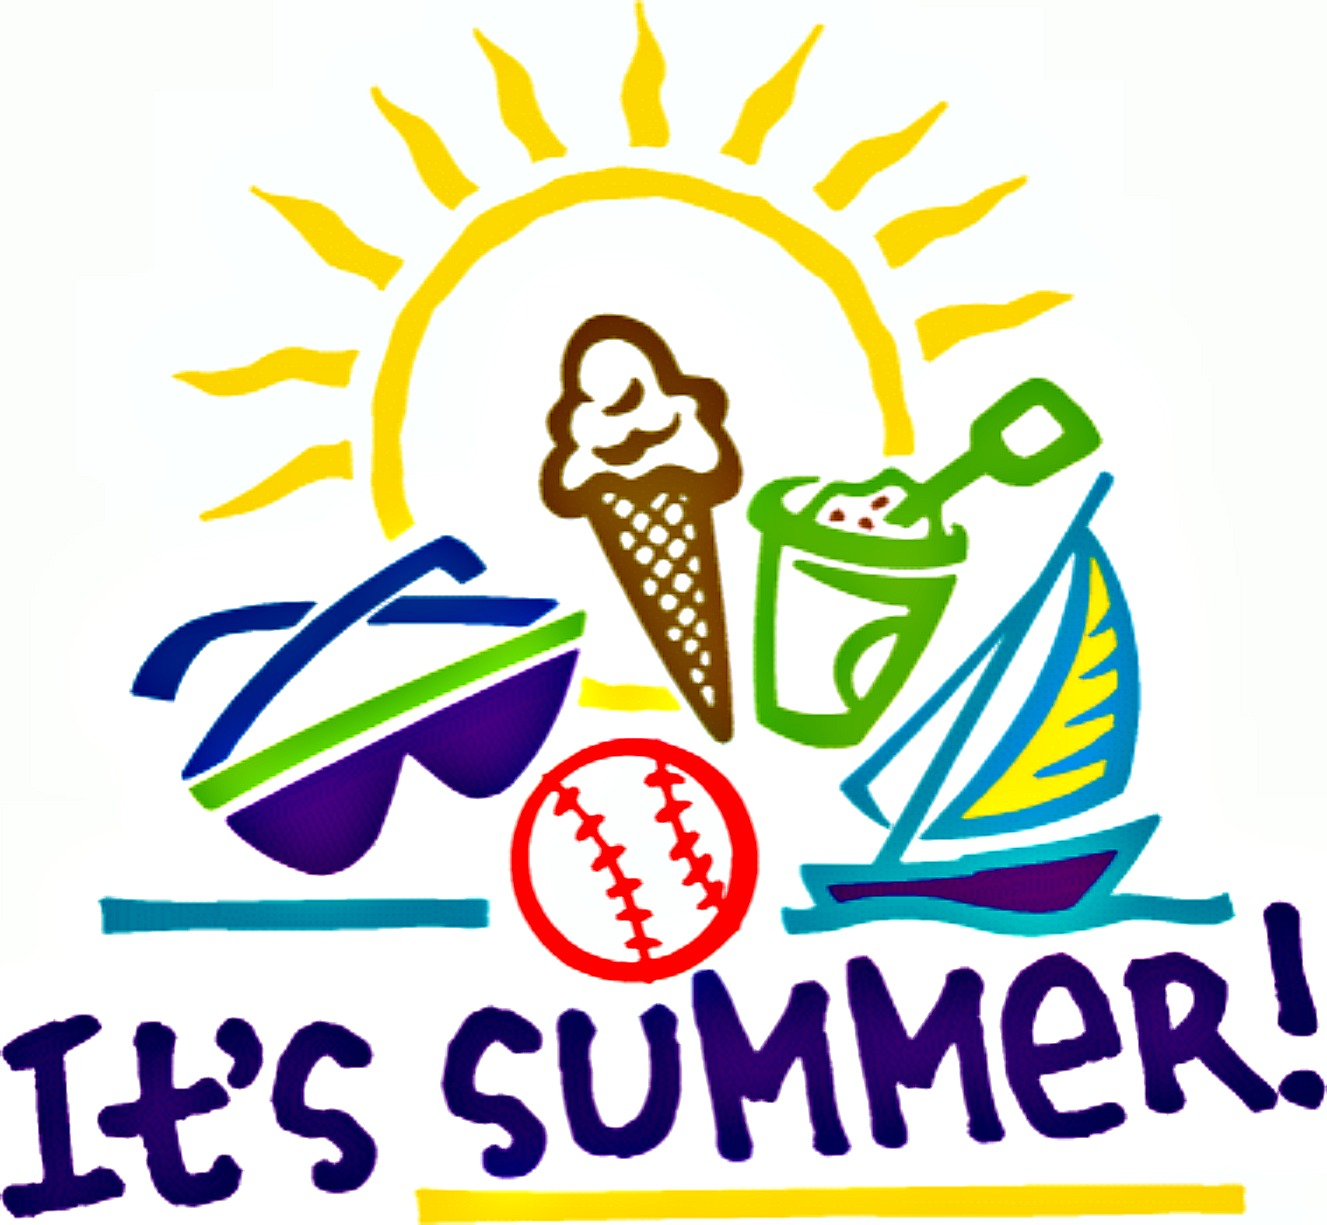 First day of summer clipart images vector First Day Of Summer Clipart 7 - 1327 X 1225 - Making-The-Web.com vector